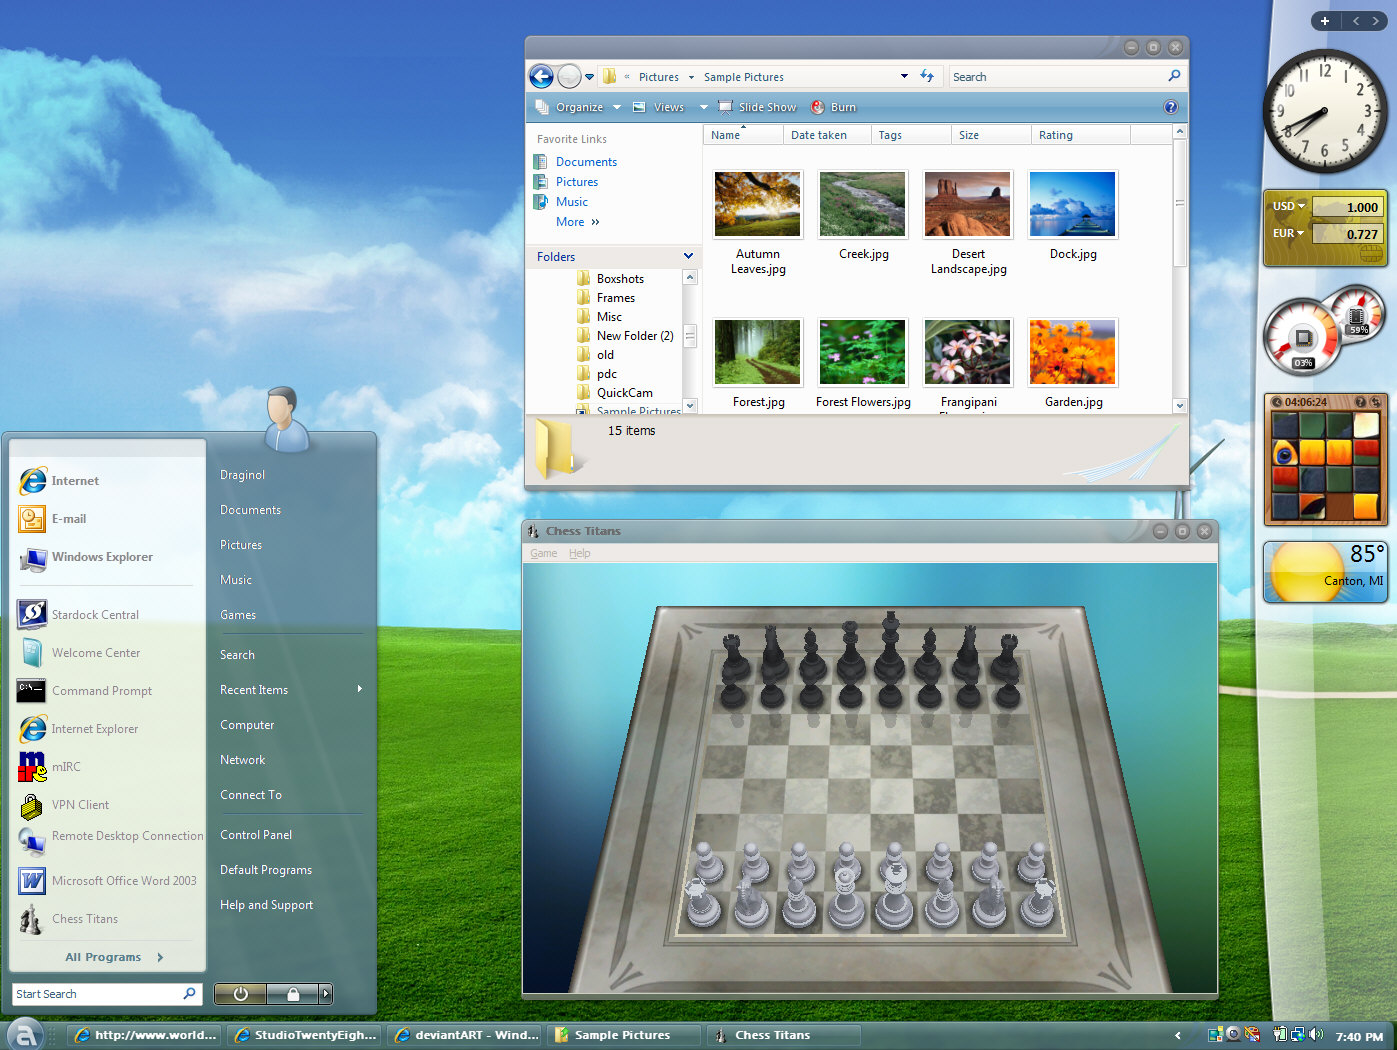 Customize the look and feel of Windows XP or Vista with WindowBlinds.